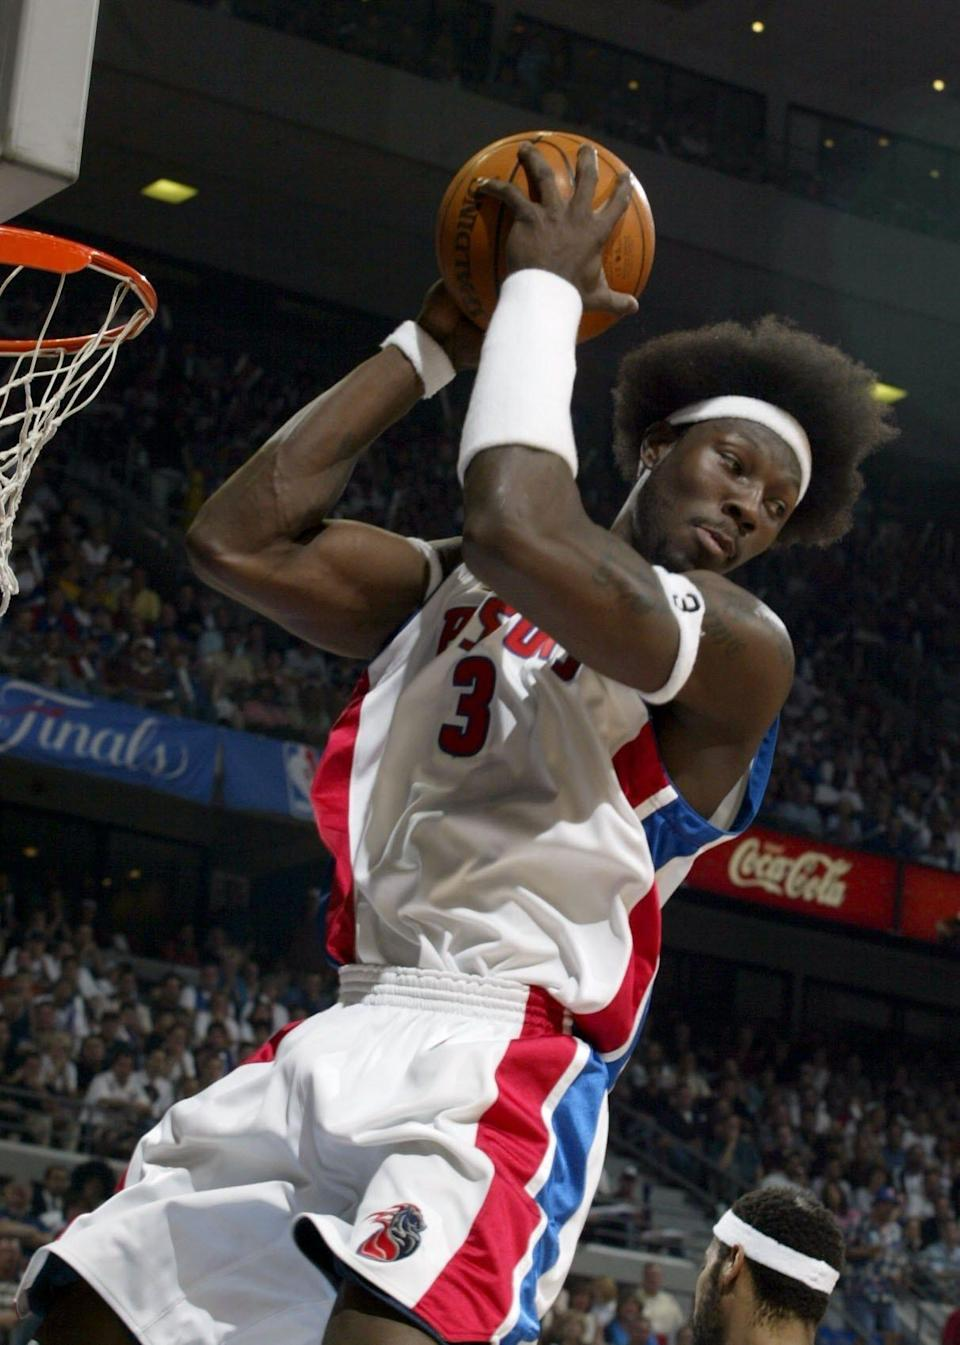 Detroit Pistons' Ben Wallace pulls in a rebound during the first quarter against the Los Angeles Lakers in Game 4 of the NBA Finals, Sunday, June 13, 2004, at the Palace of Auburn Hills,.